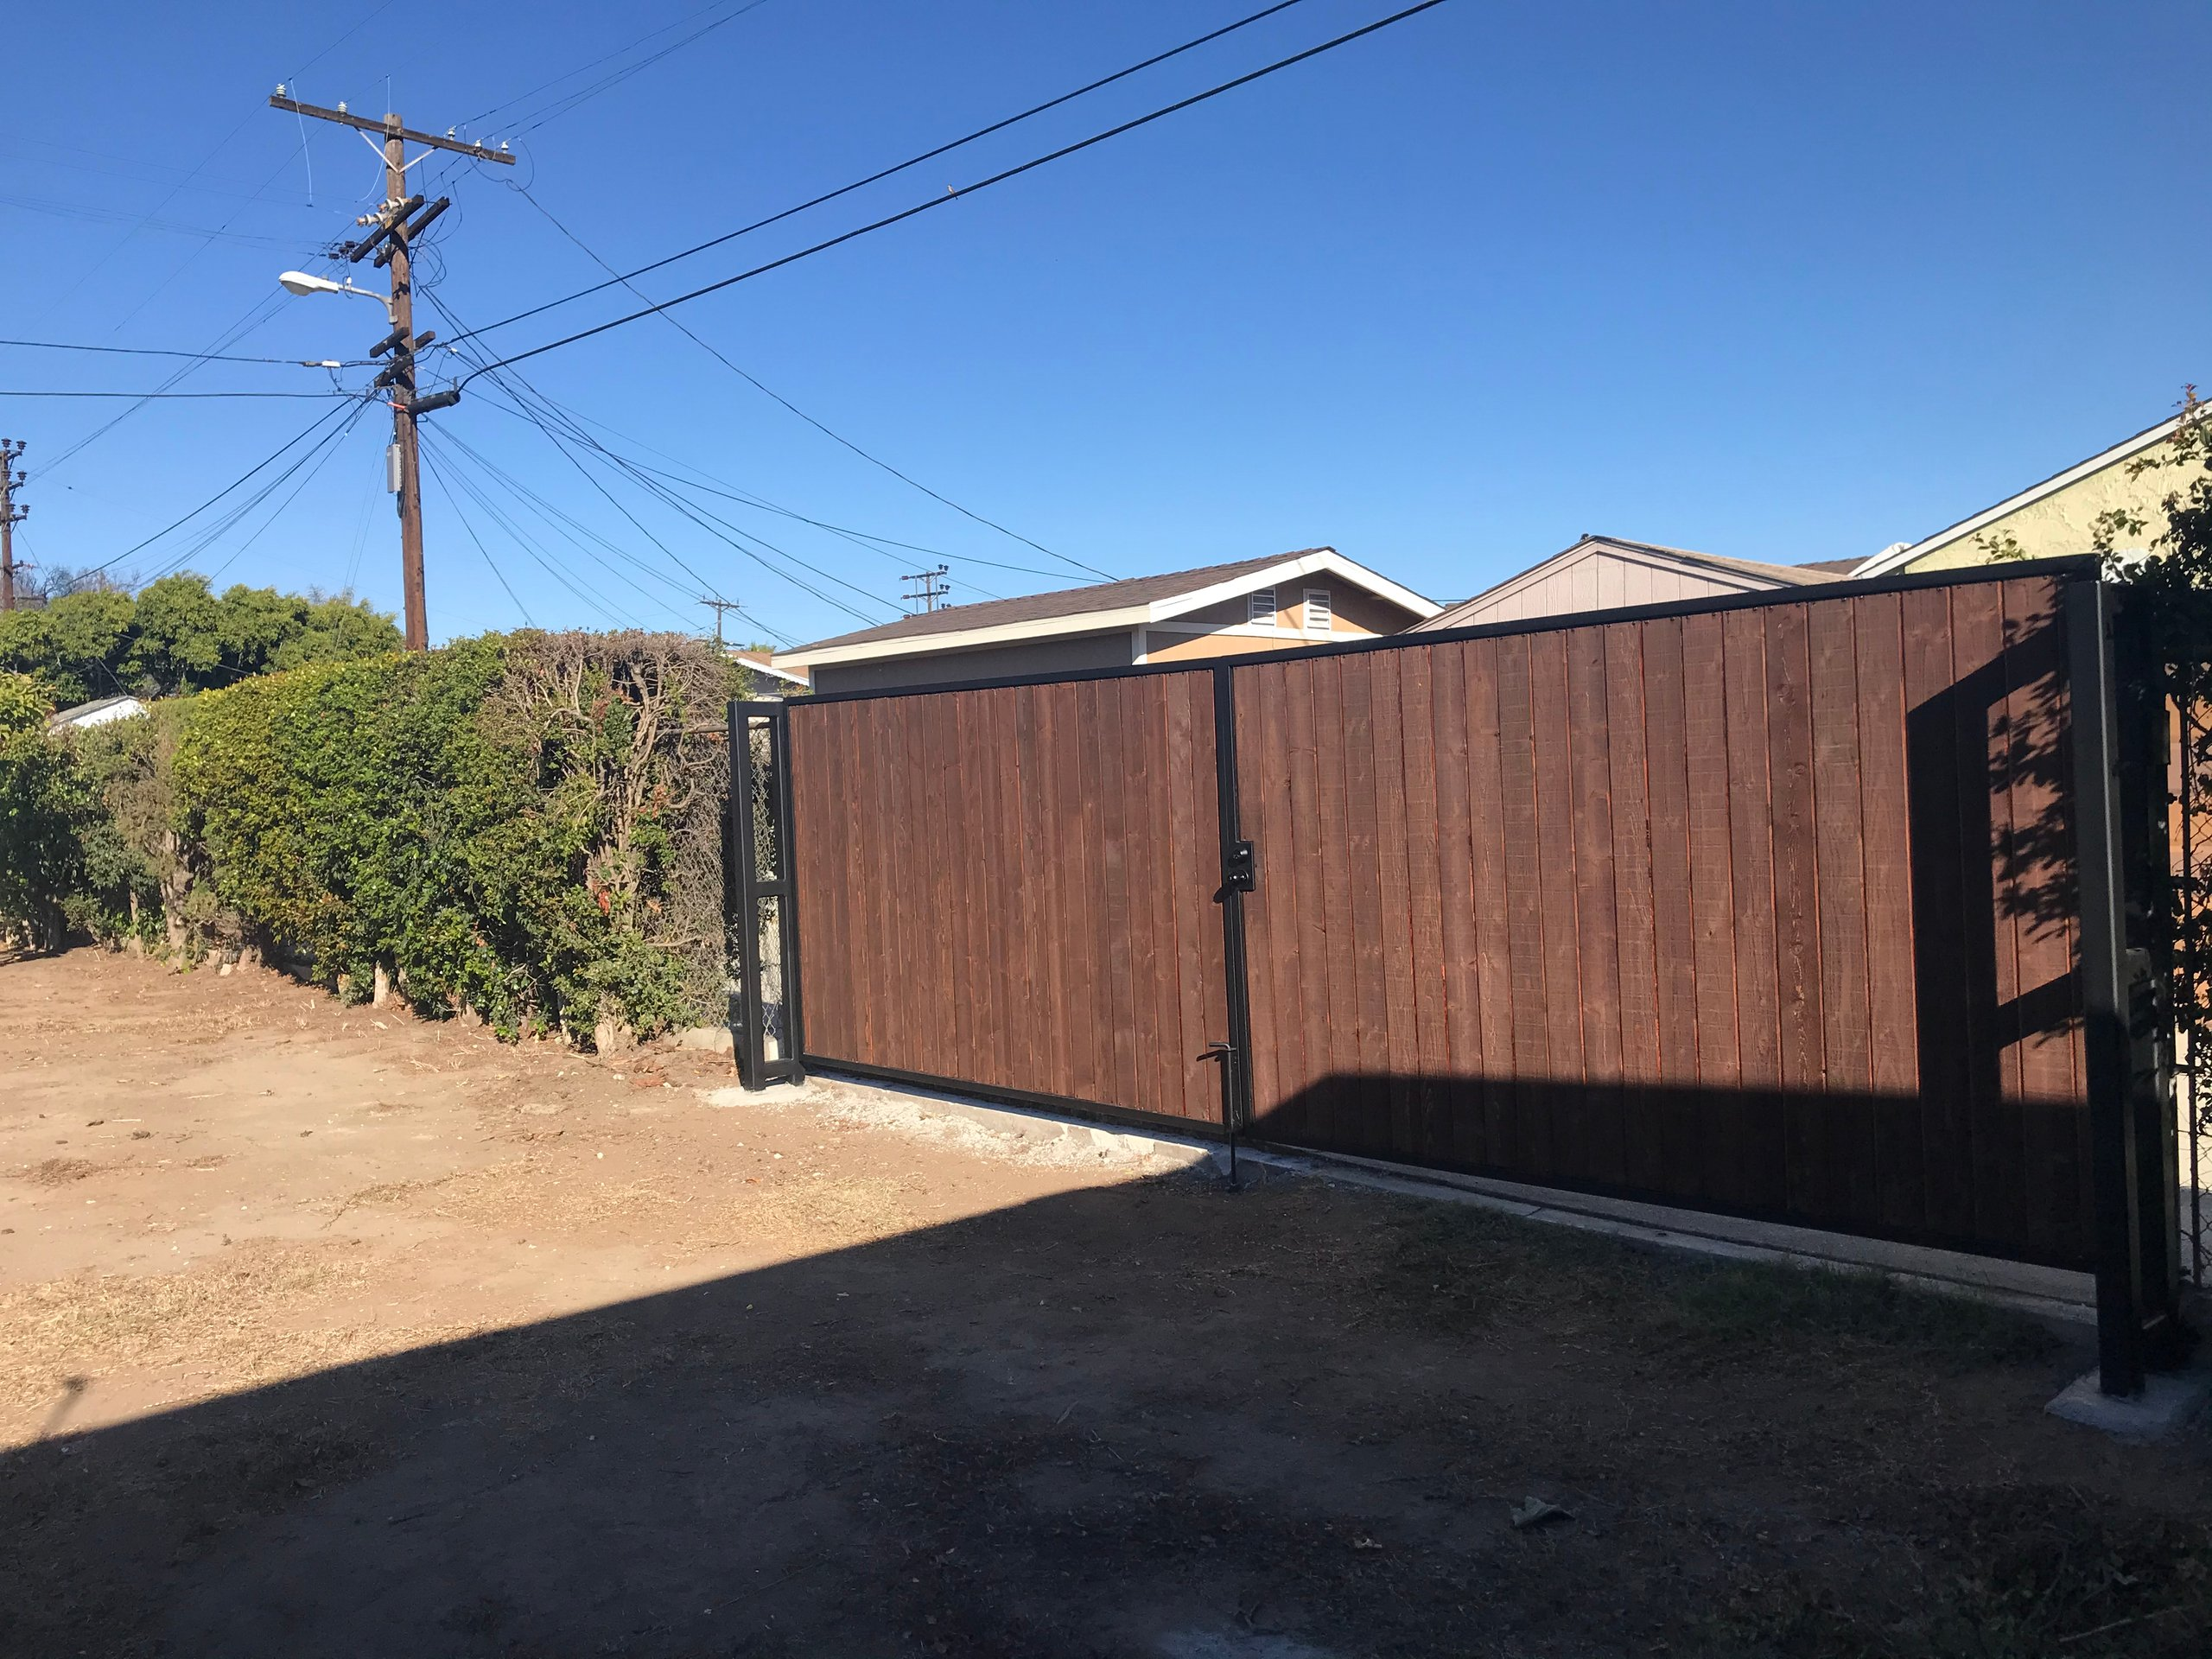 25x10 Unpaved Lot self storage unit